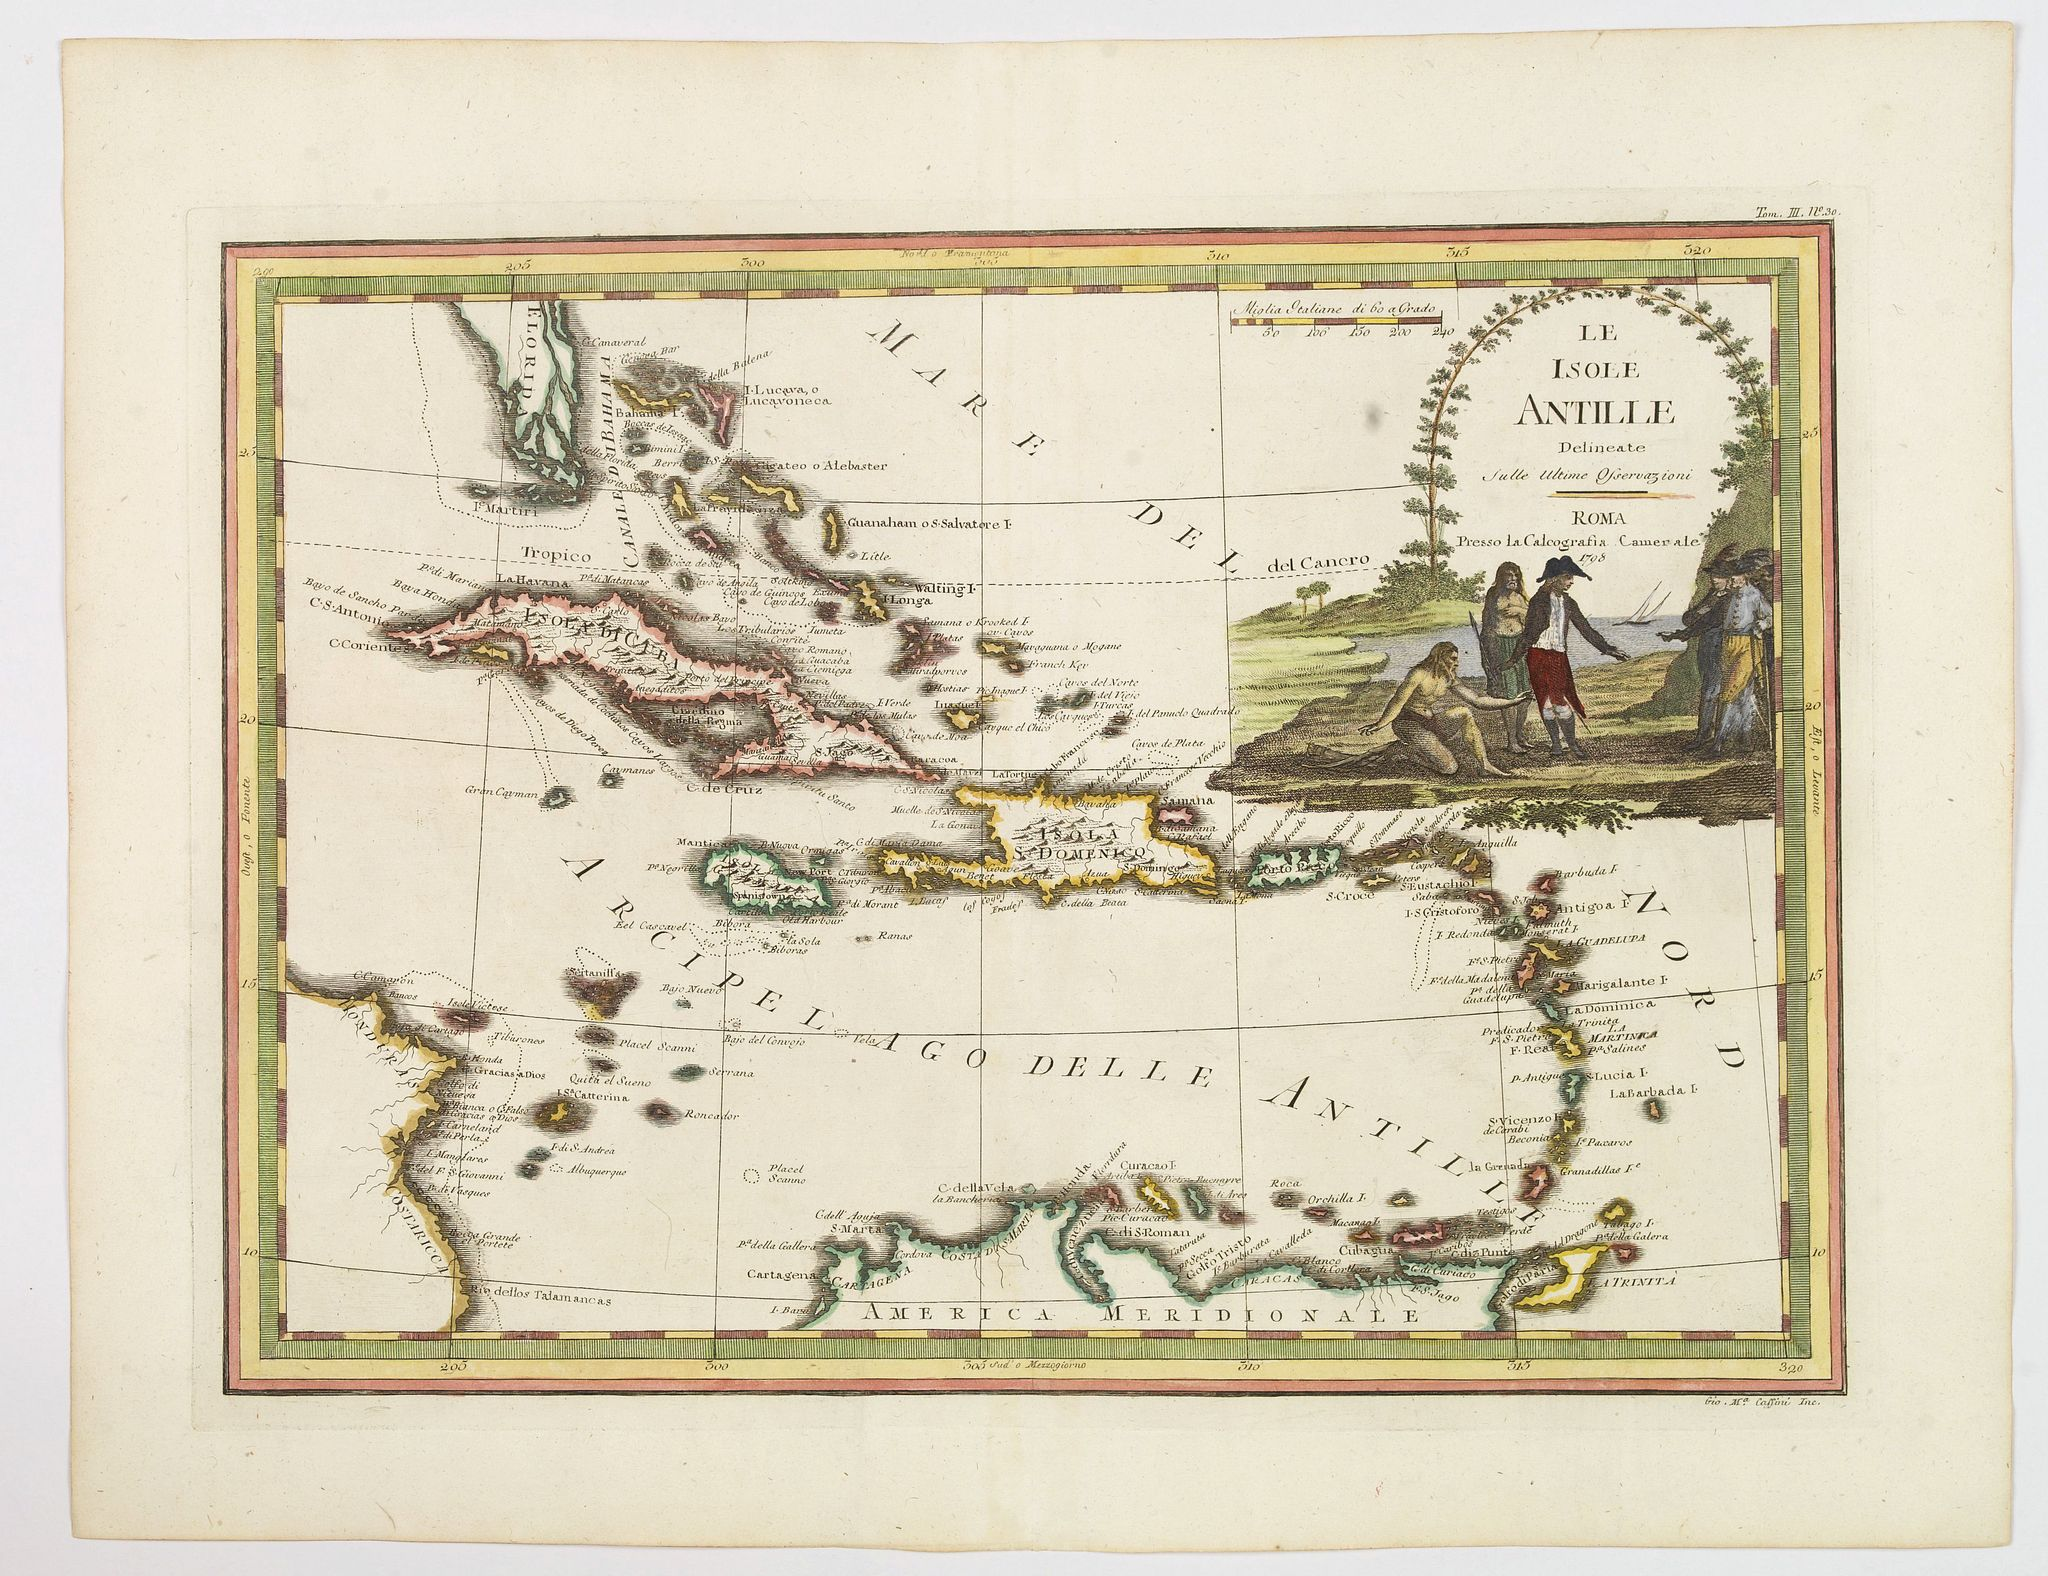 CASSINI,G.M.,  Le Isole Antille Delineate Sulle Ultime Observazioni., antique map, old maps